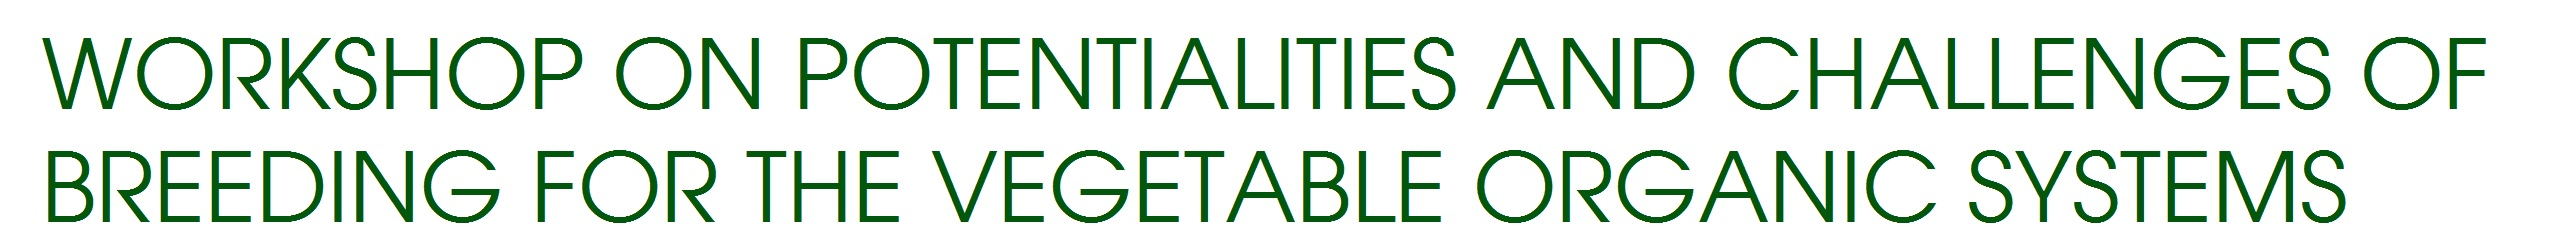 Workshop on Potentialities and challenges of breeding for the vegetable organic systems